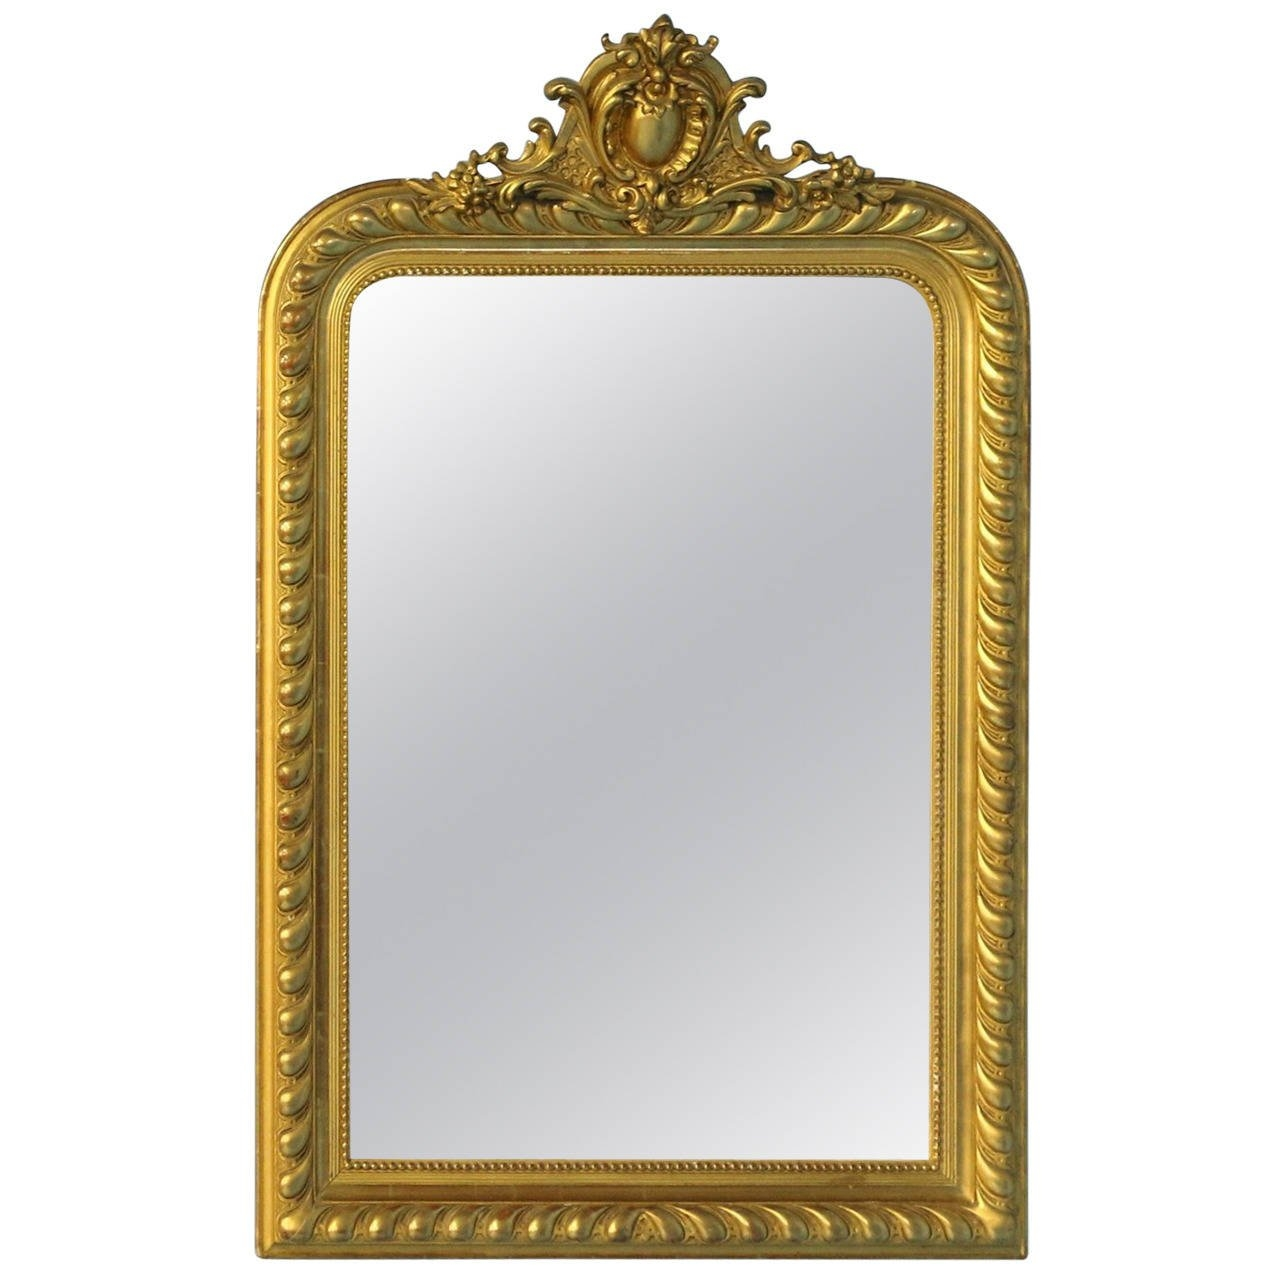 Antique French Gold Gilt Mirror Circa 1860 80 At 1stdibs Throughout Gold Gilt Mirrors (Image 1 of 15)